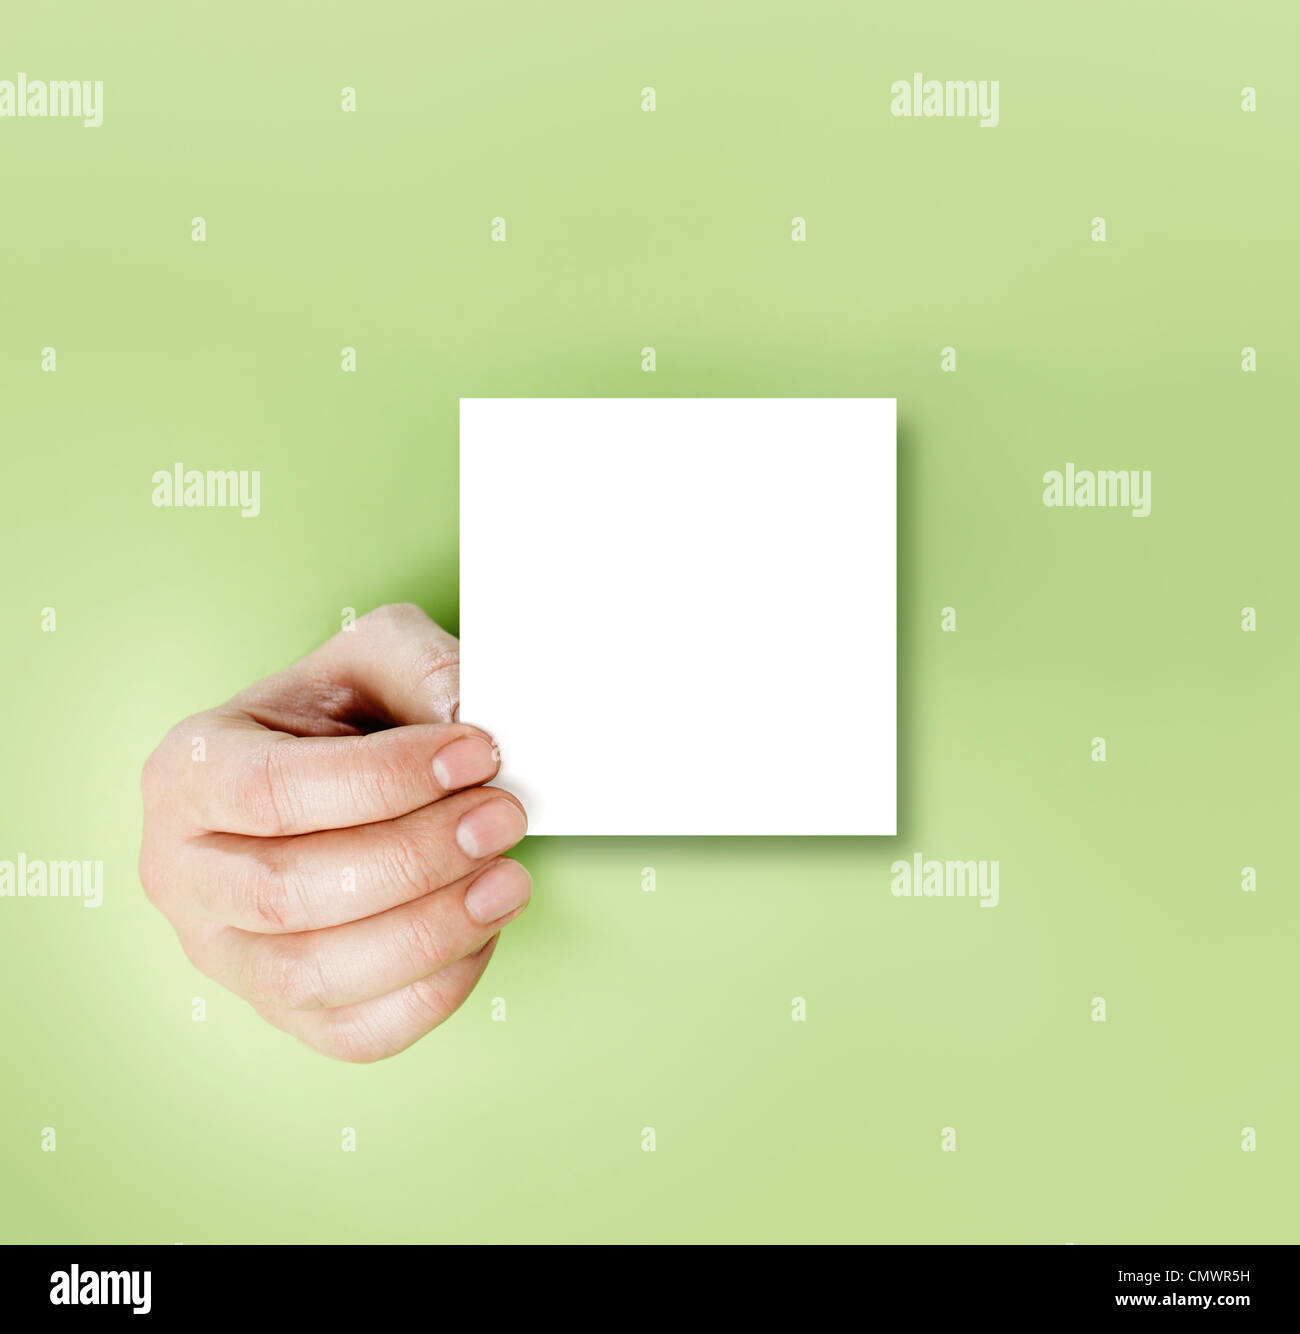 A hand holding a blank note over green background. - Stock Image